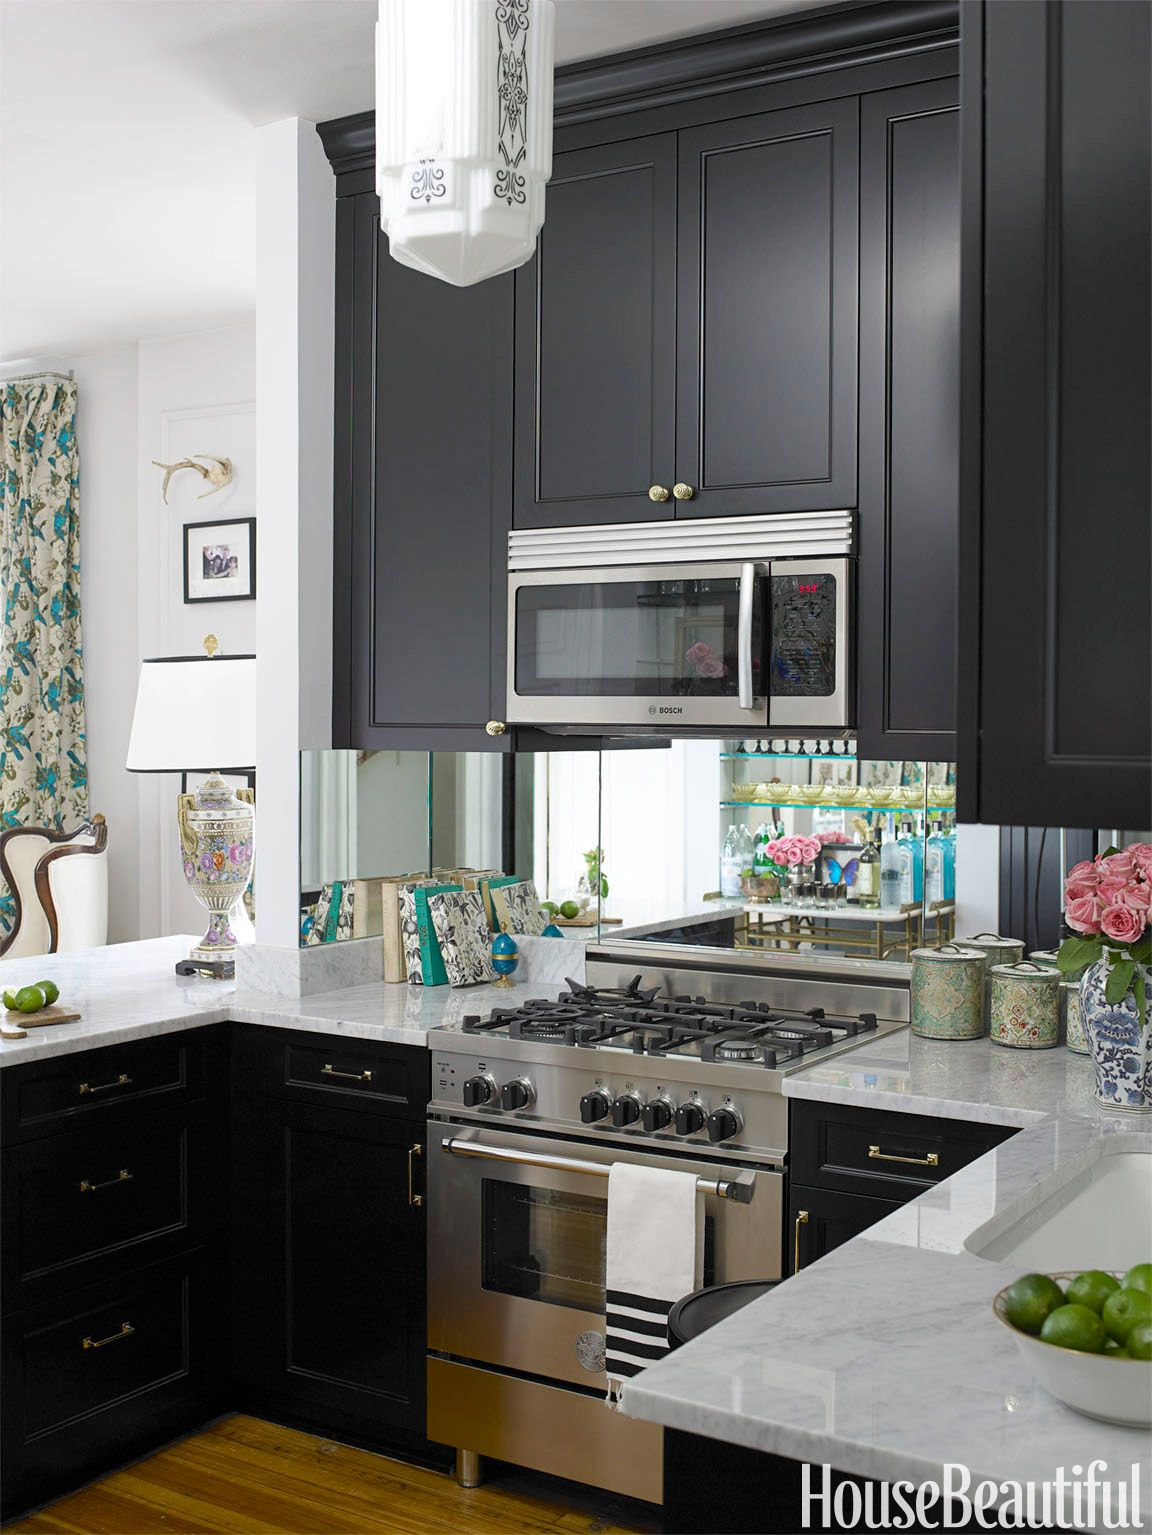 25 Small Kitchens That Maximize Style and Efficiency | High ...